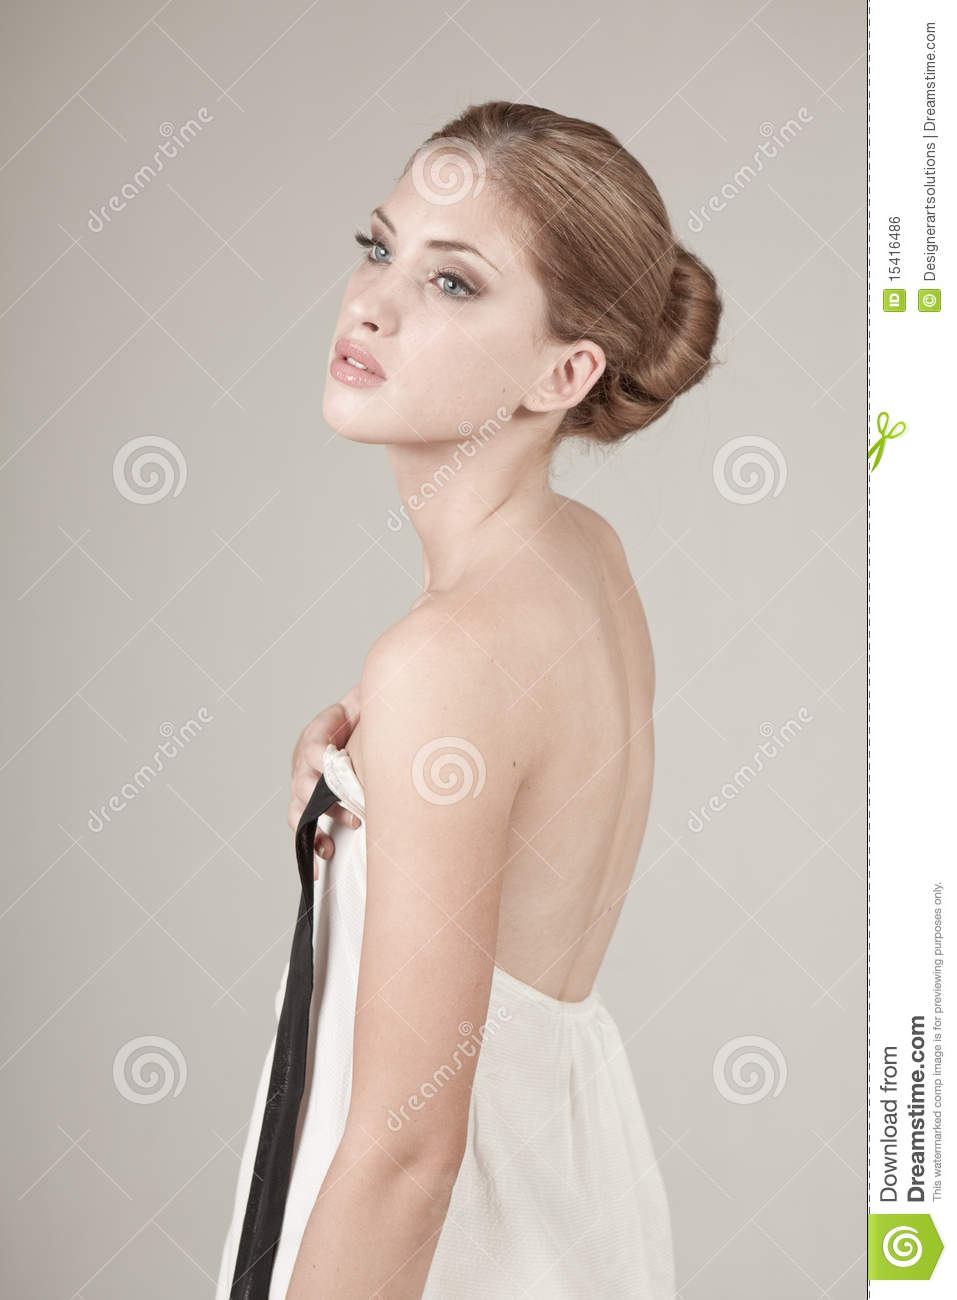 Young Woman Holding the Front of Her Dress